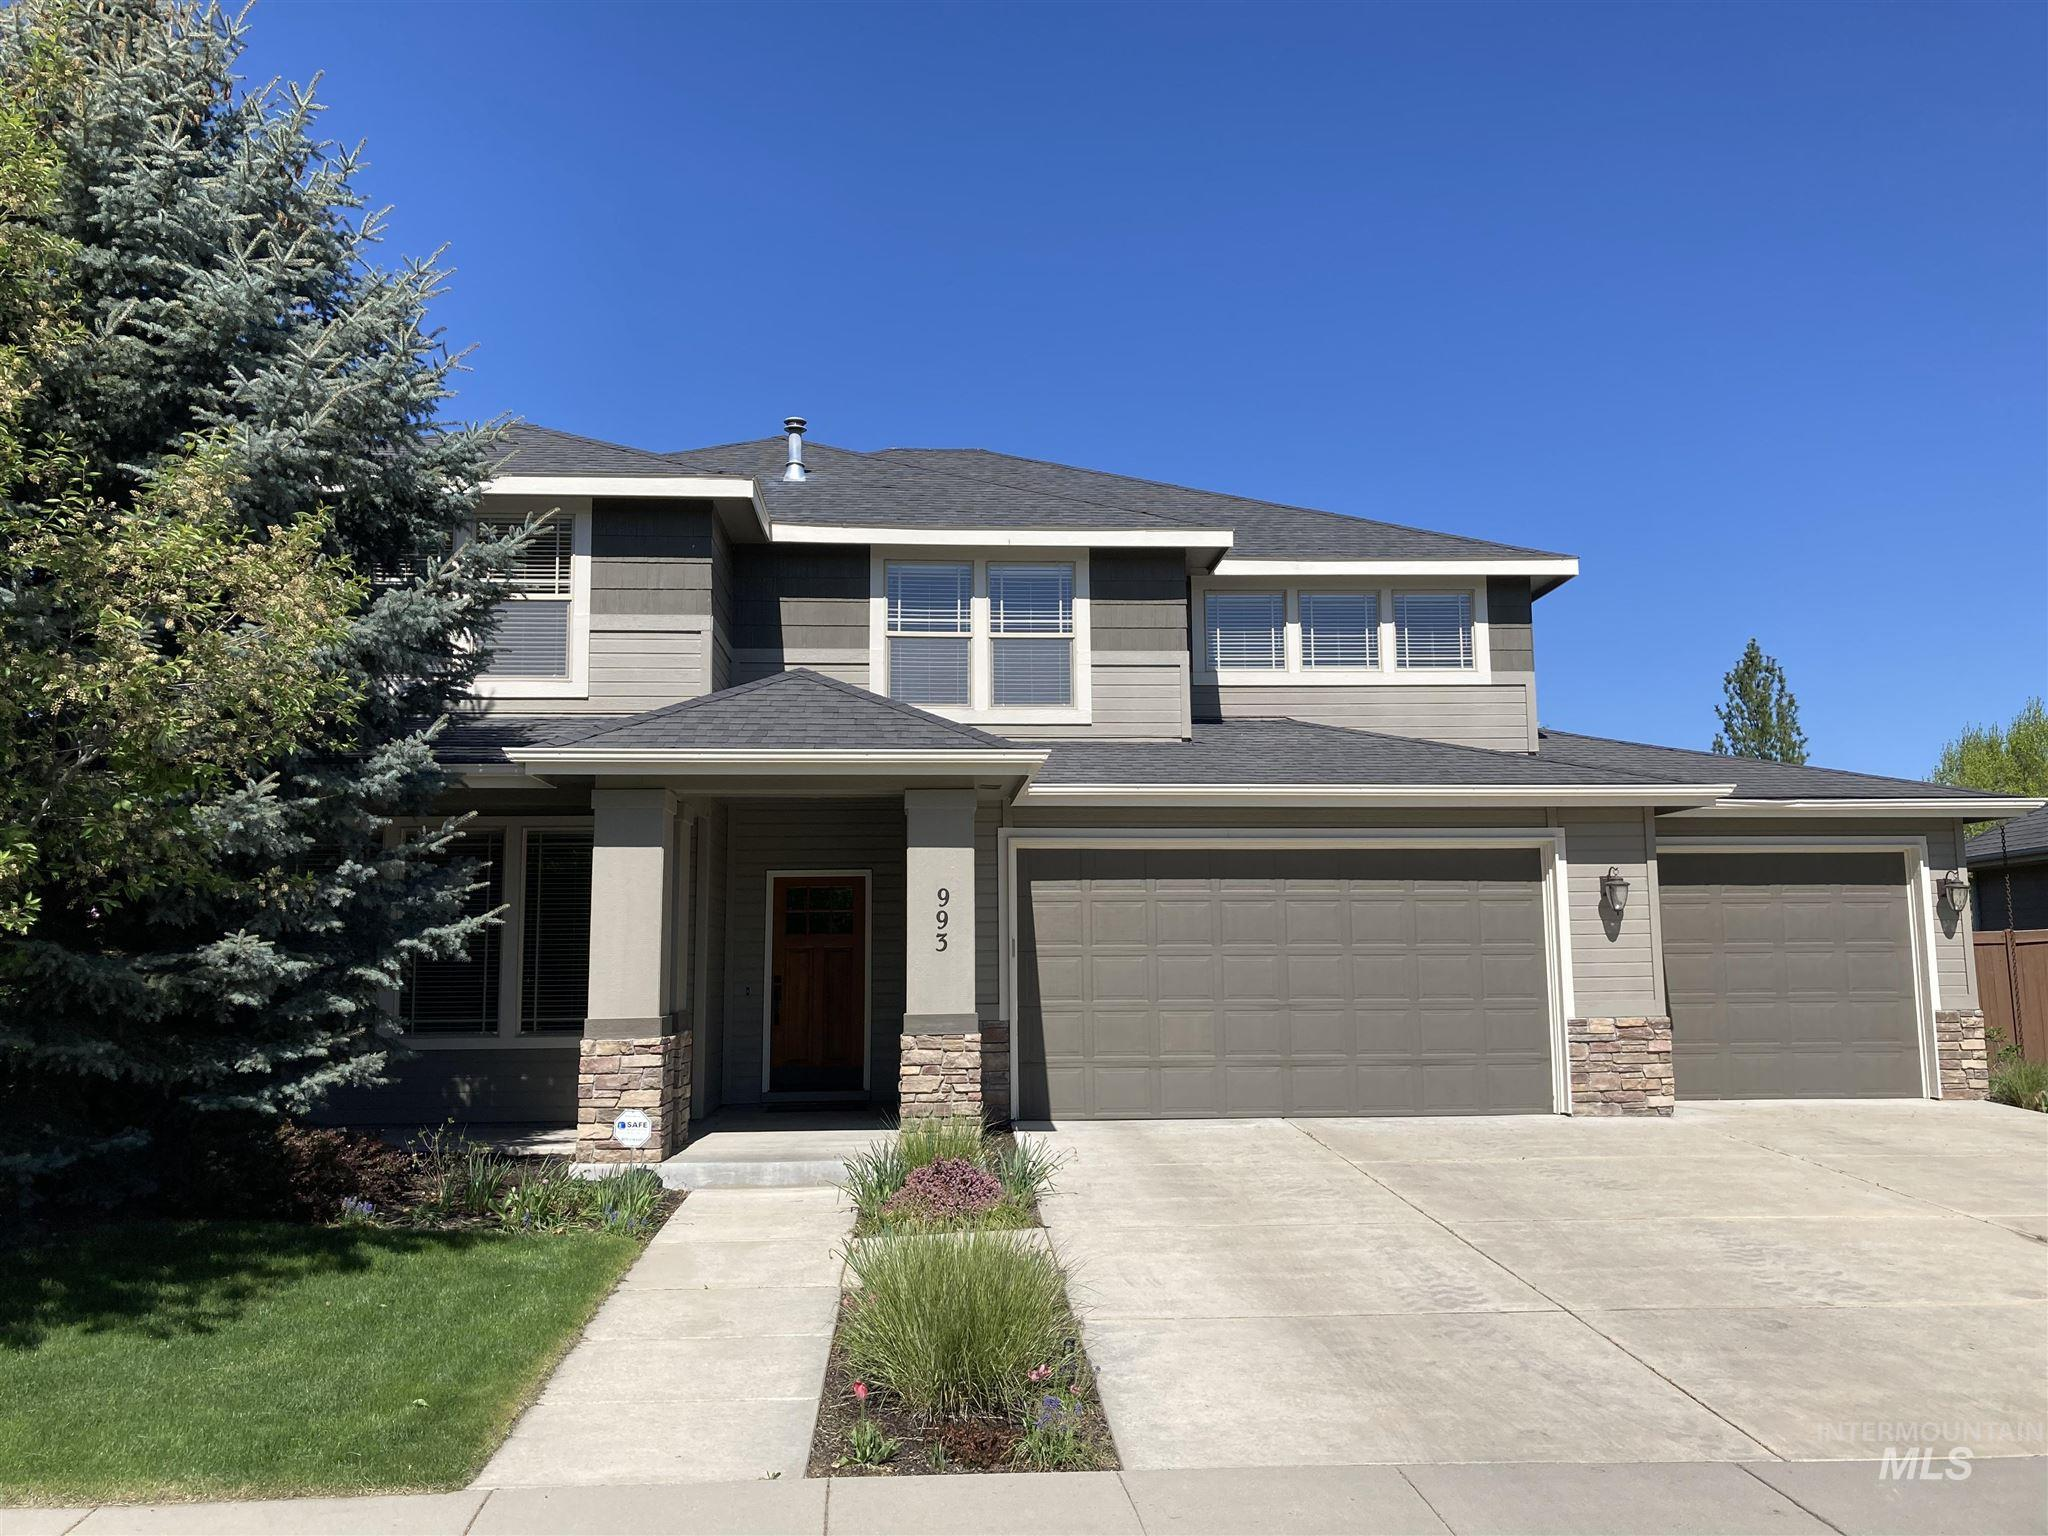 993 W CAGNEY Property Photo - Meridian, ID real estate listing